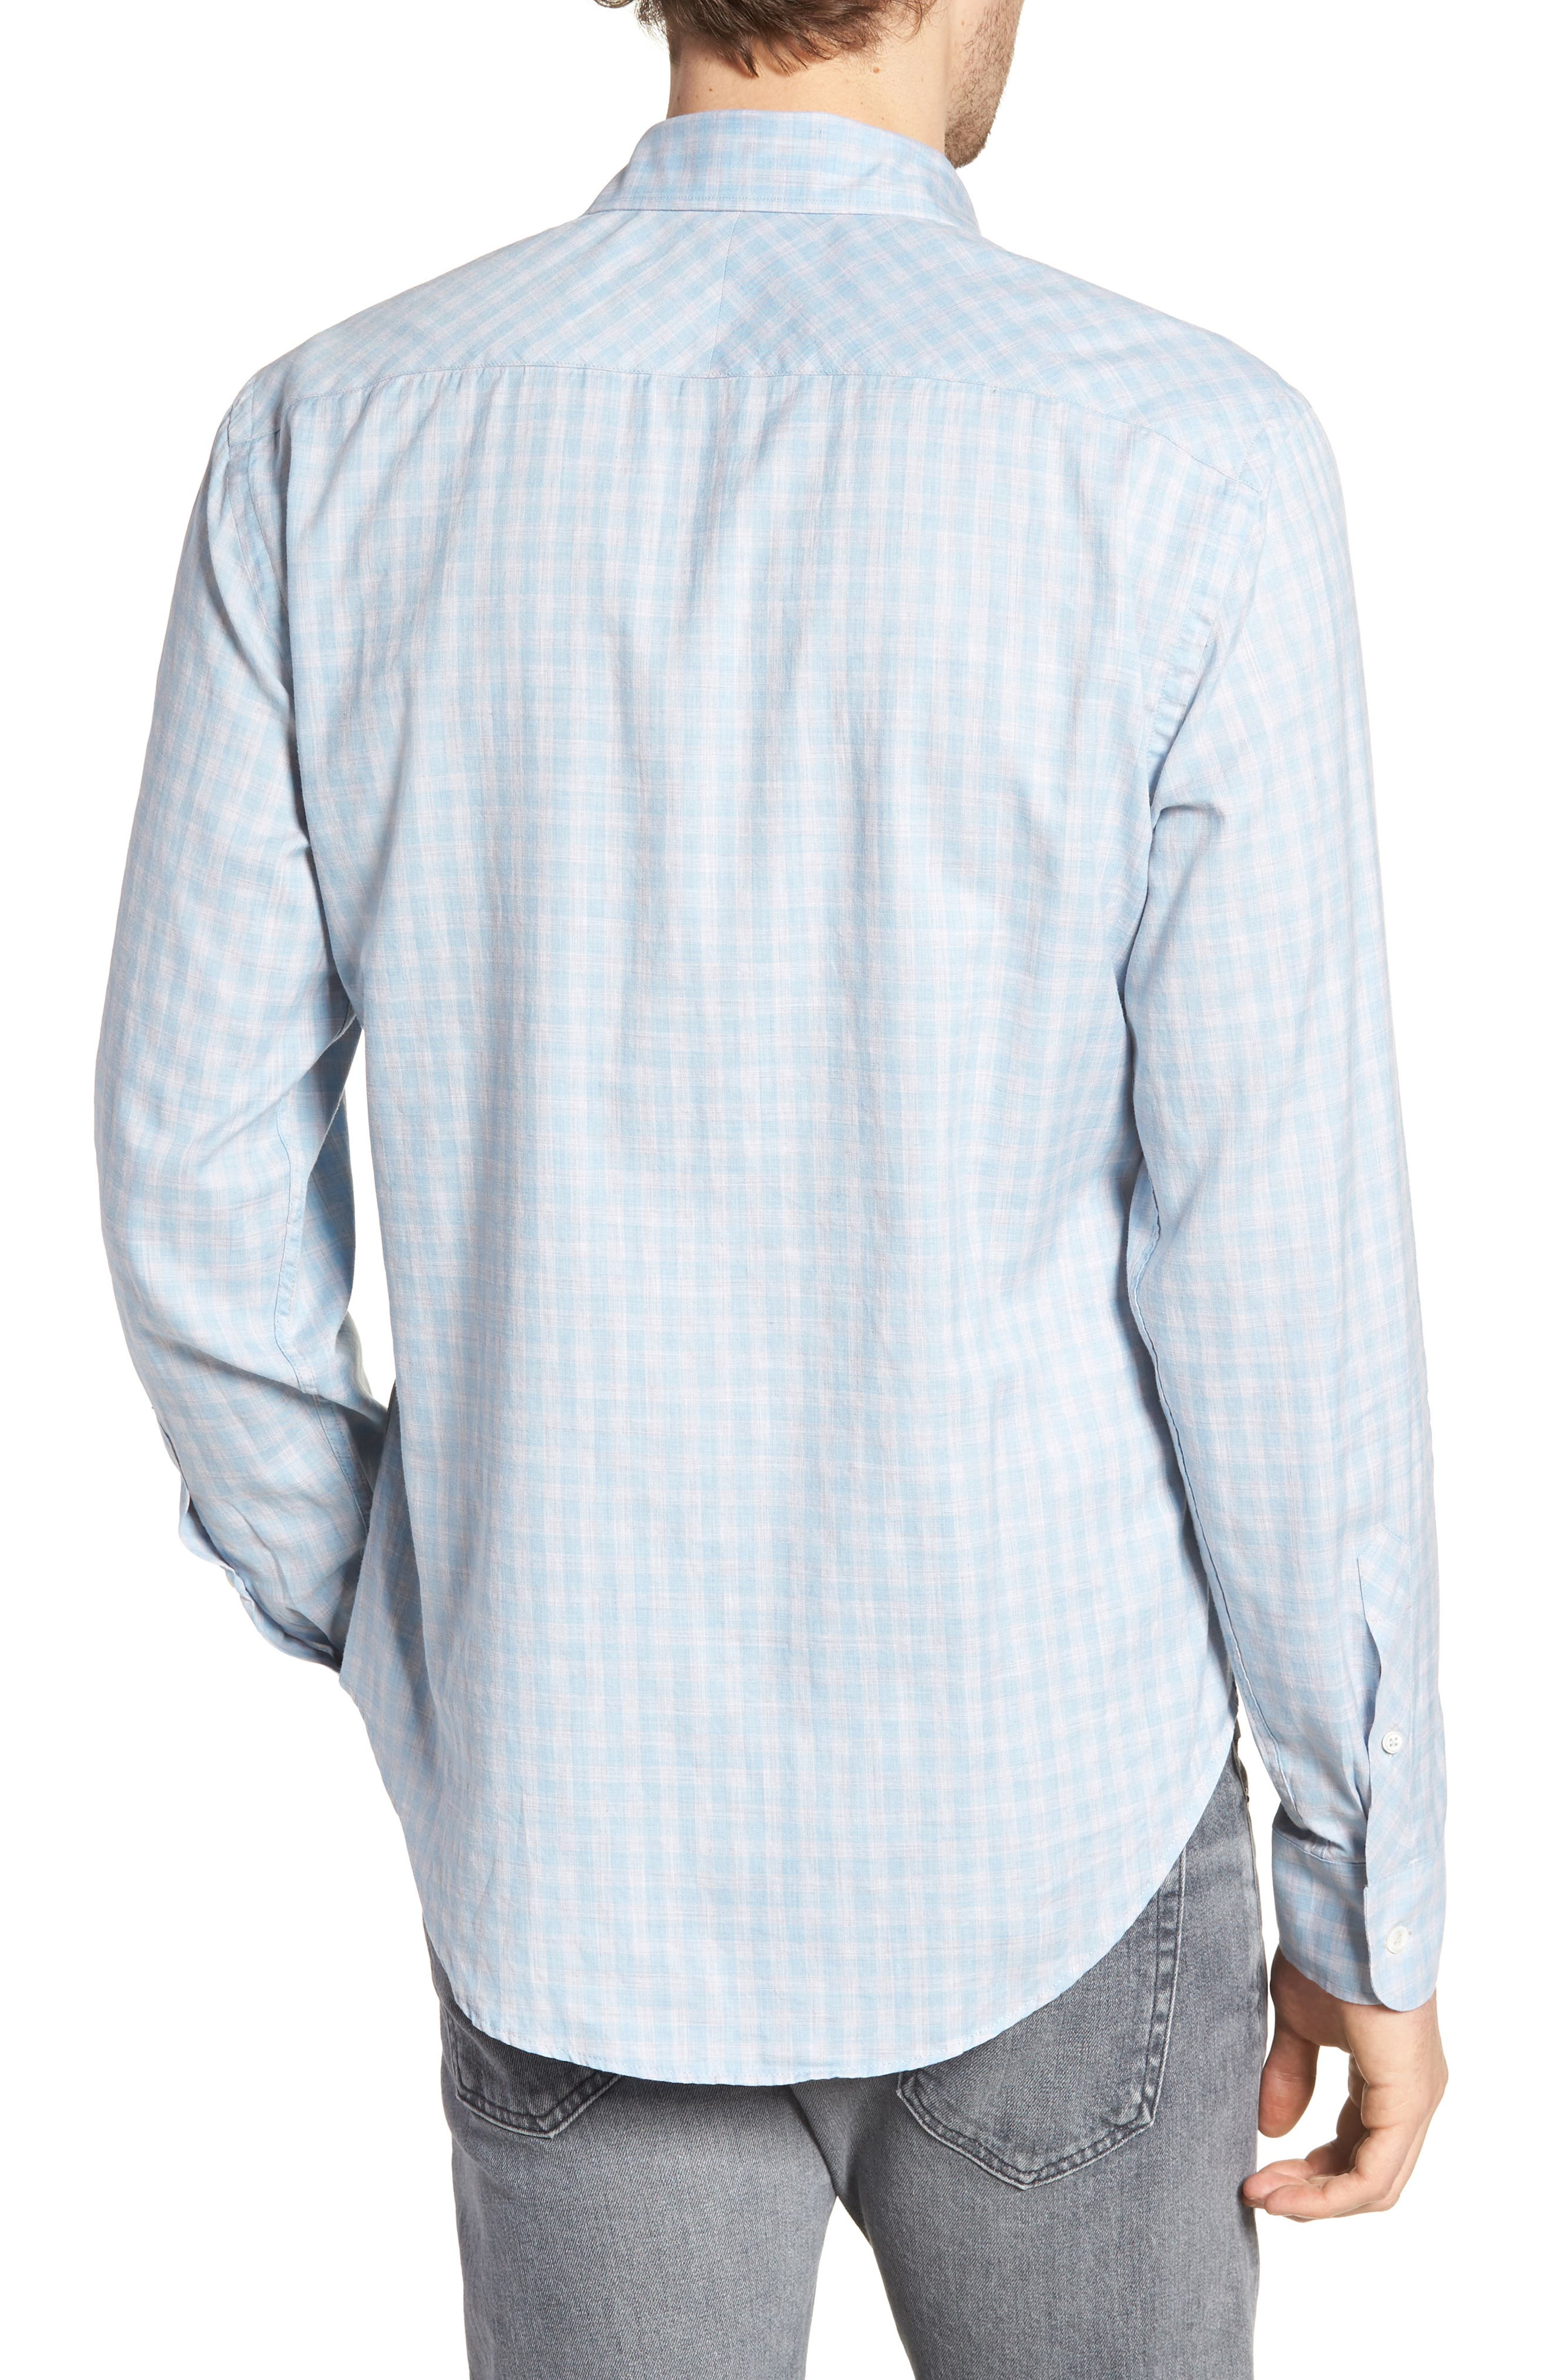 Kirby Slim Fit Check Sport Shirt,                             Alternate thumbnail 2, color,                             BLUE/ GREY